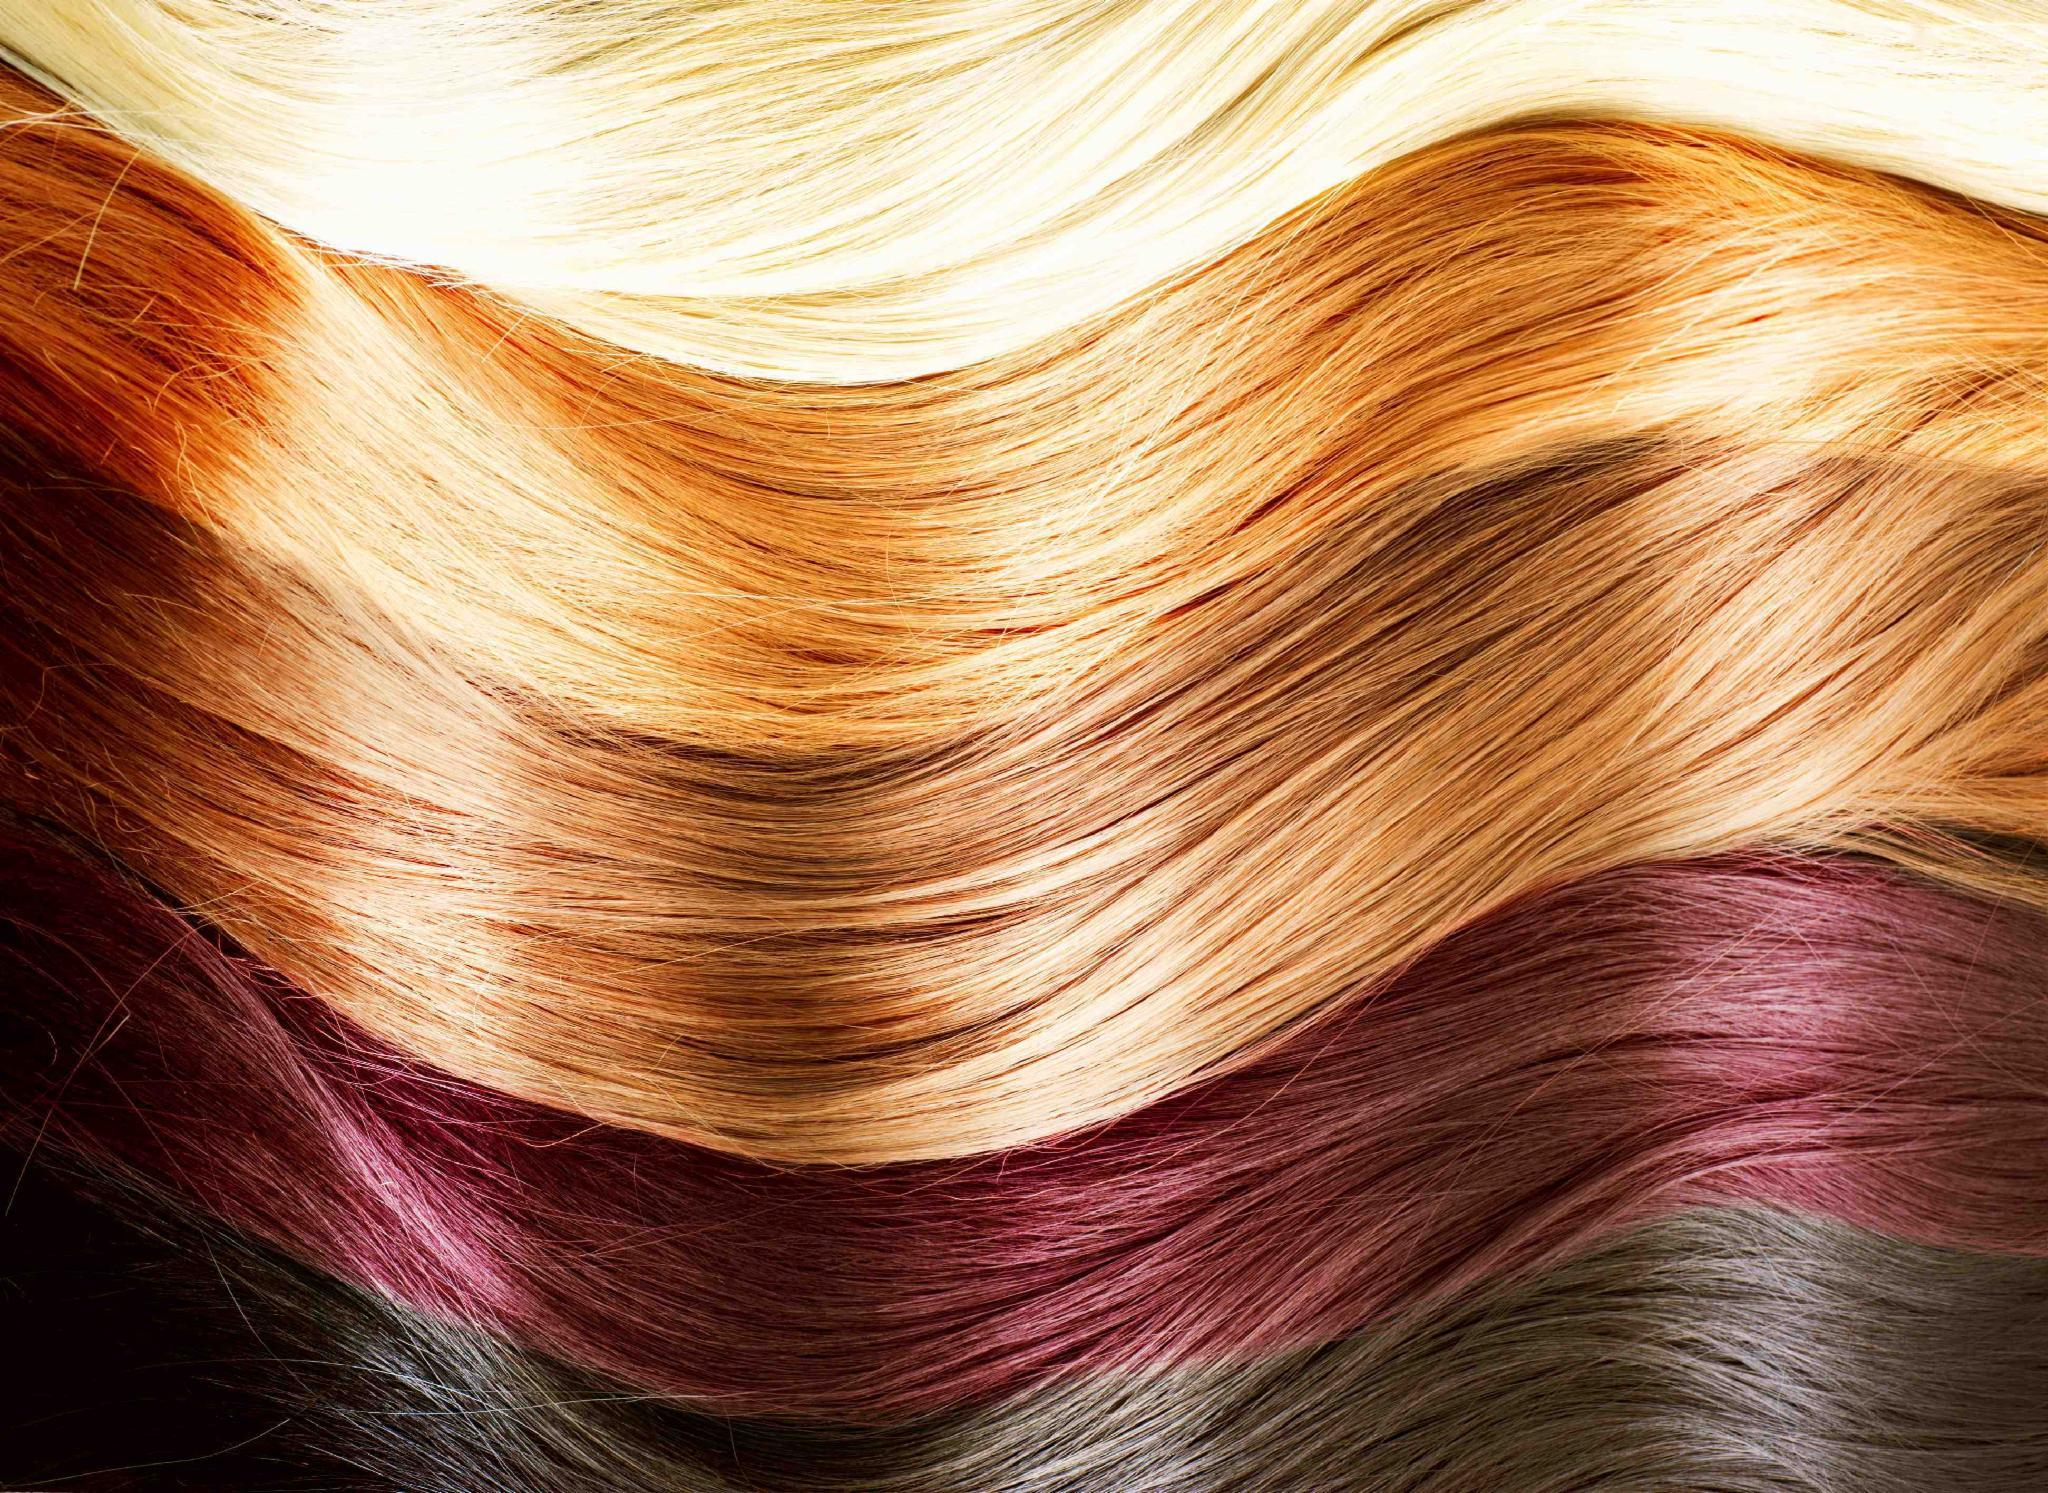 What is your natural hair color out of these?